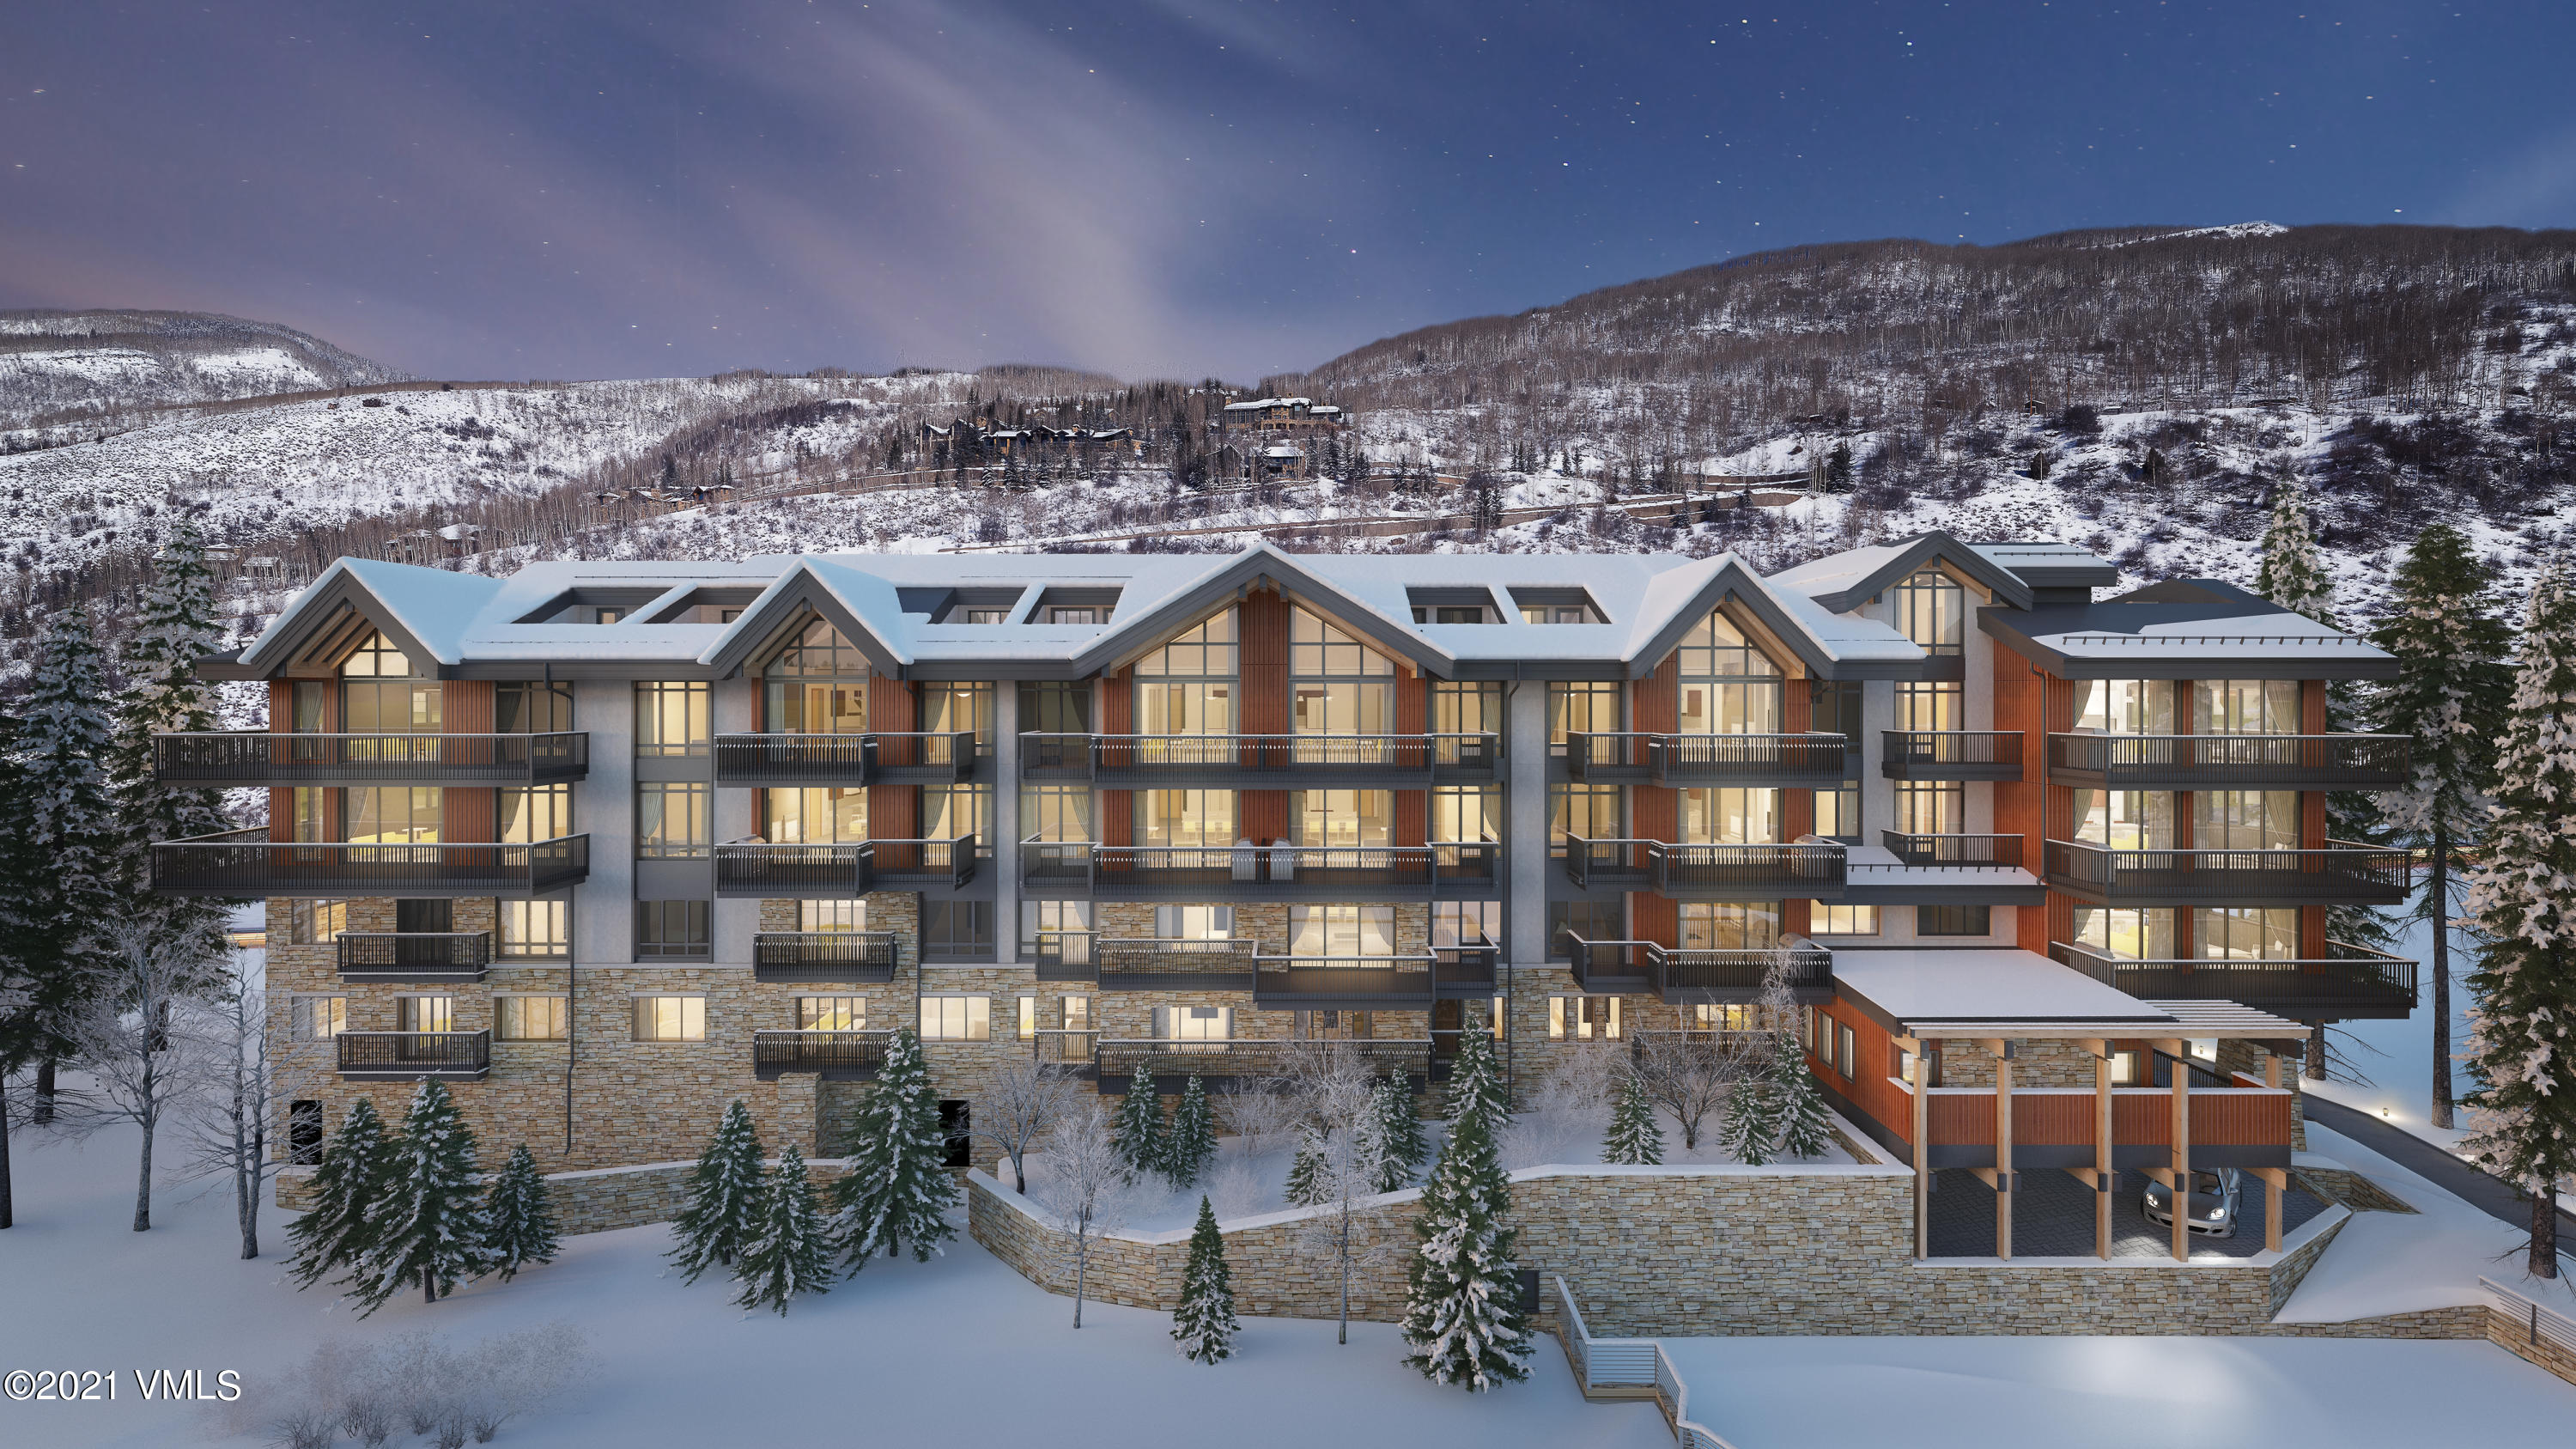 Residence #305 features: 3 bedrooms, including 2 lock-offs (366 square feet, and 310 square feet), 8'-deep deck off master bedroom and great room, and 3-panel great room window (9'h X 11'w) that opens onto deck. Altus Vail sets the new standard for mountain home living in Vail.  As one of the most significant new projects in Vail Village in over ten years, owning at Altus means you will enjoy the ultimate modern homeownership experience.  Altus is a statement of striking, timeless design.  The residences themselves feel like single-family homes - with spaciousness, attention to detail and privacy that creates complete comfort.  And with spectacular views of Vail Mountain and easy access connecting you to the best of Vail, there is simply nothing else like it.  With only 15 luxury residences for sale in the community, ownership is limited and truly special.  Buyer and/or Buyer's agent to verify taxes, square footage and HOA information.  Legal description is subject to change as this home is still under construction. Estimated completion May of 2021. Taxes are estimated only. HOA fee is projected to be 0.76 per square foot, per month. Budget to be finalized. Artist renderings for similar units in the building.